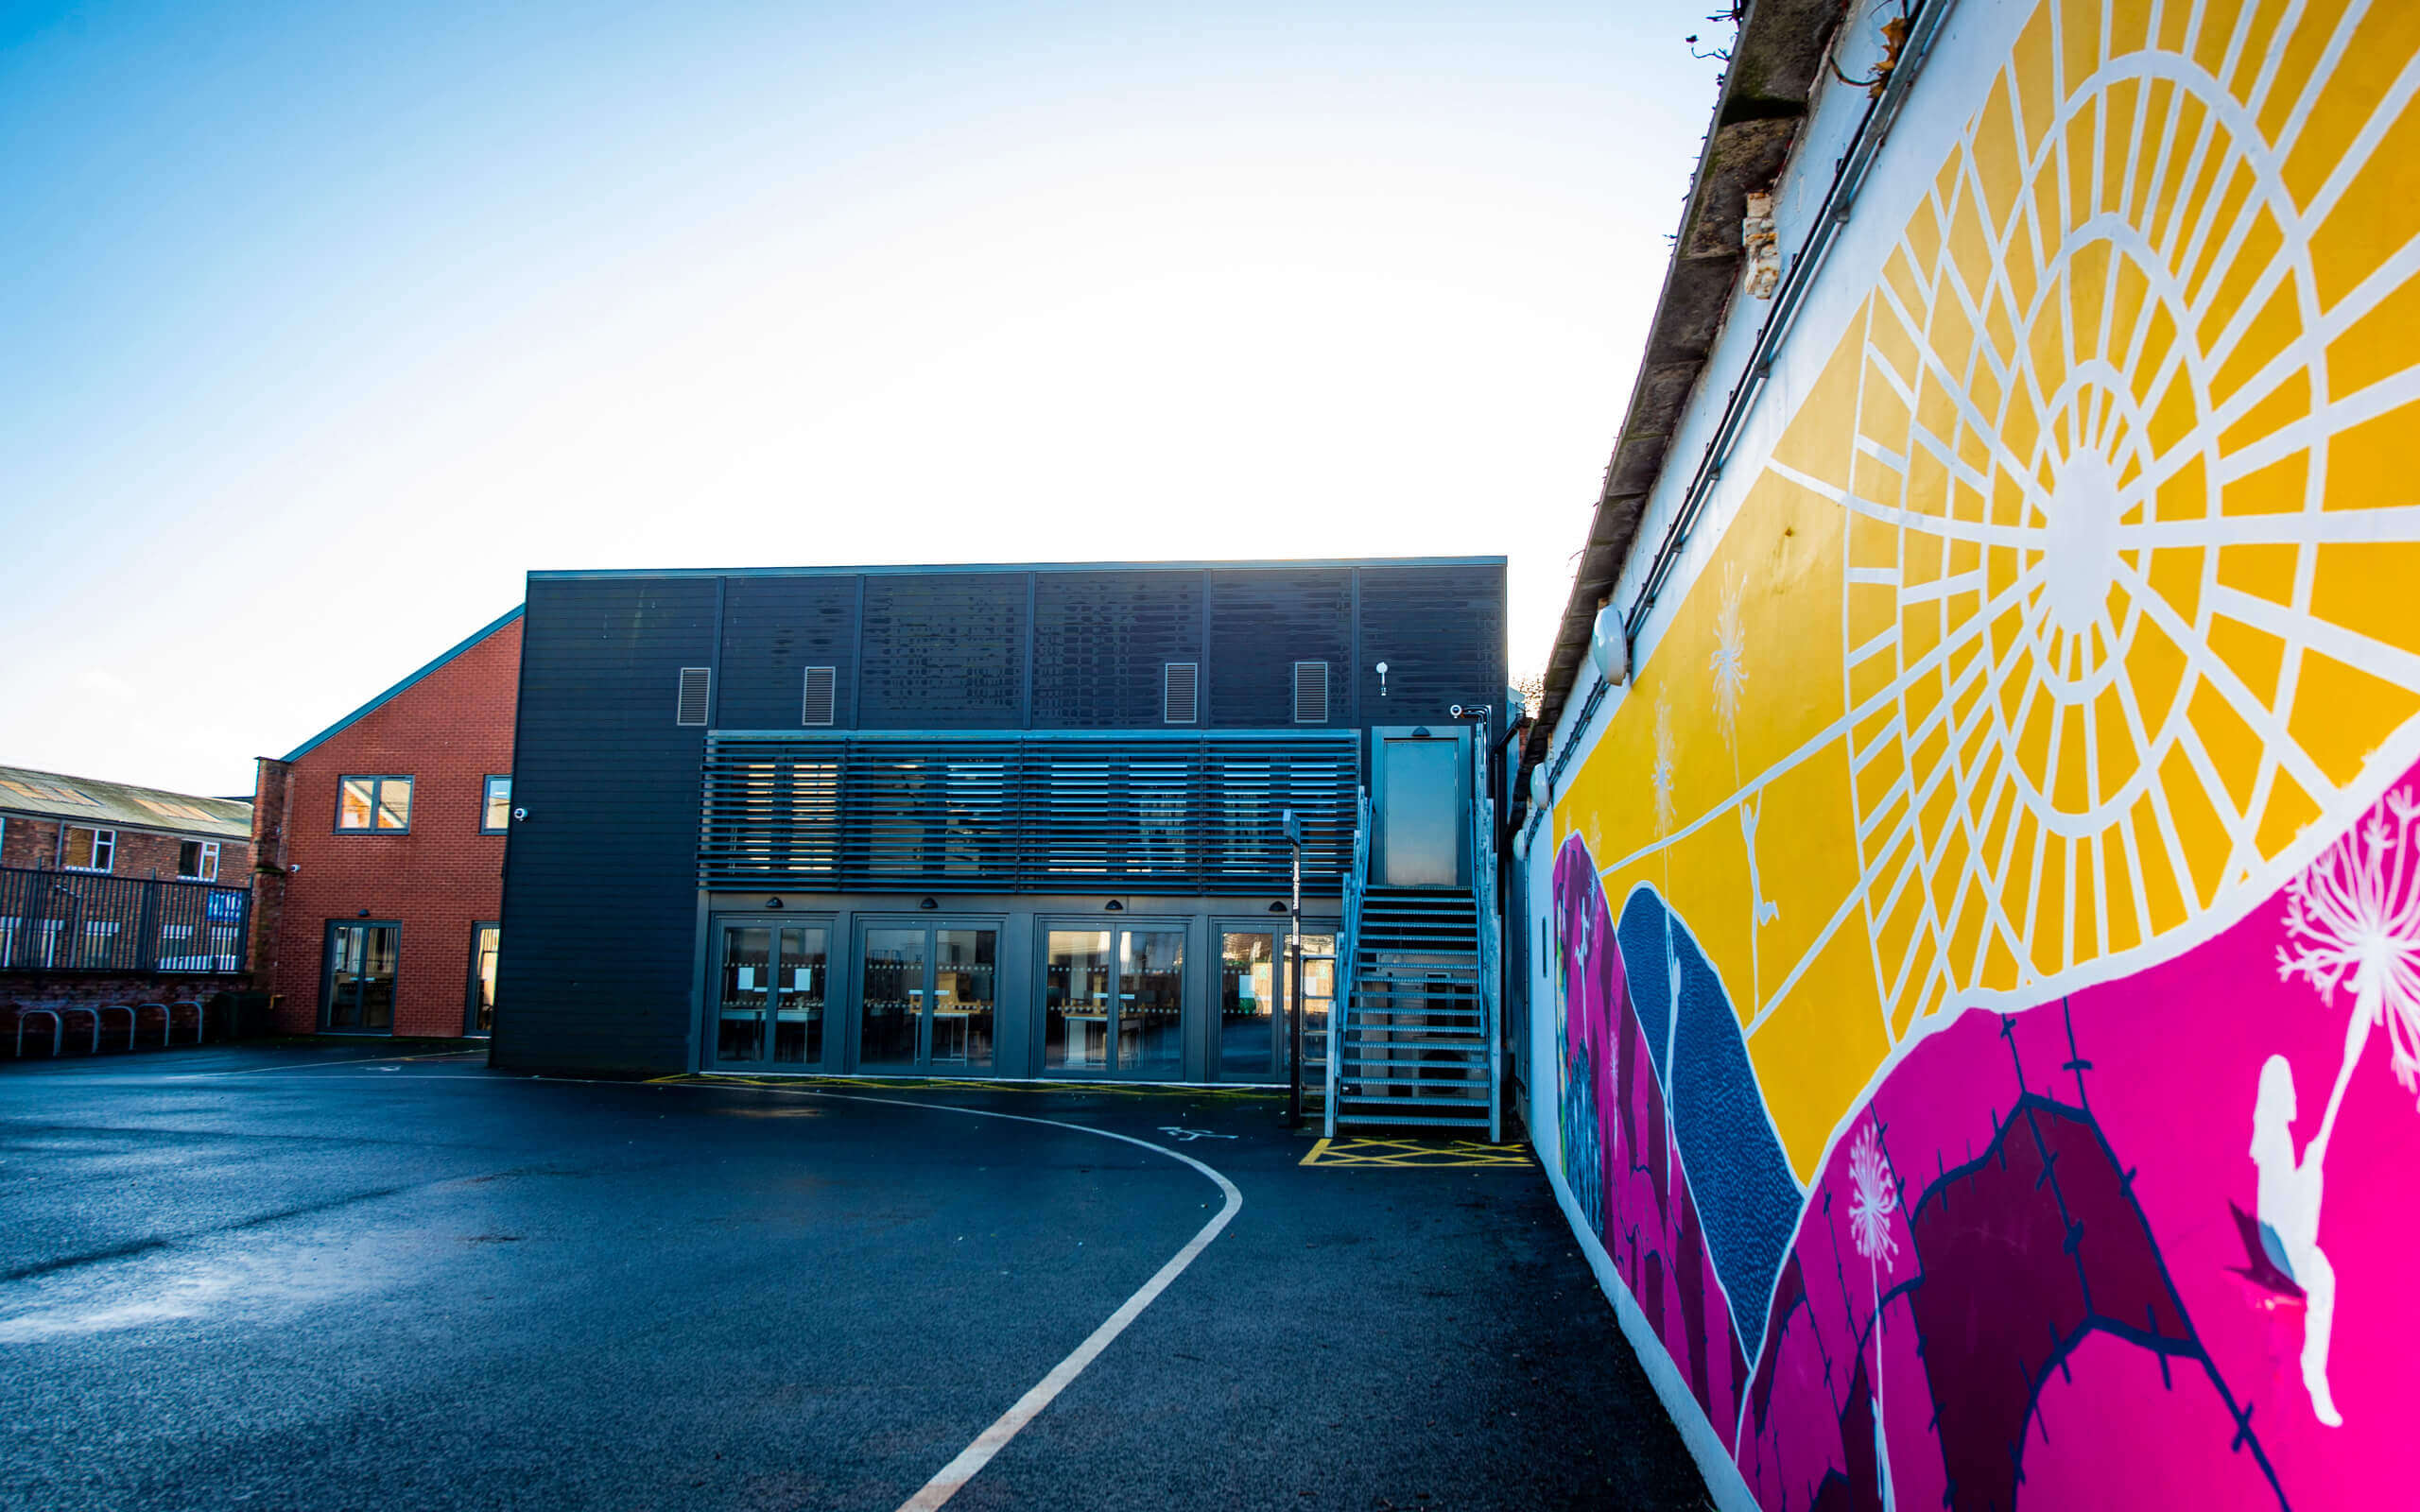 The Fashion and Textiles Centre at the University of Derby, next to a painted mural on a wall